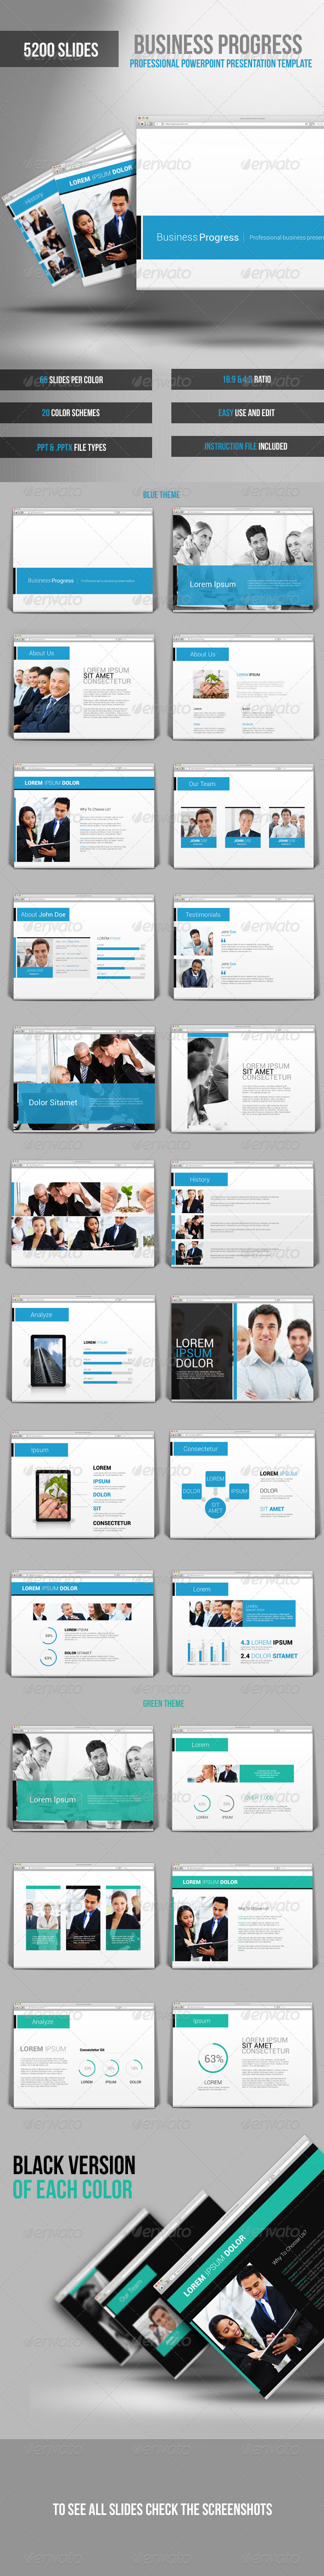 GraphicRiver Business Progress Powerpoint Presentation Template 7544538